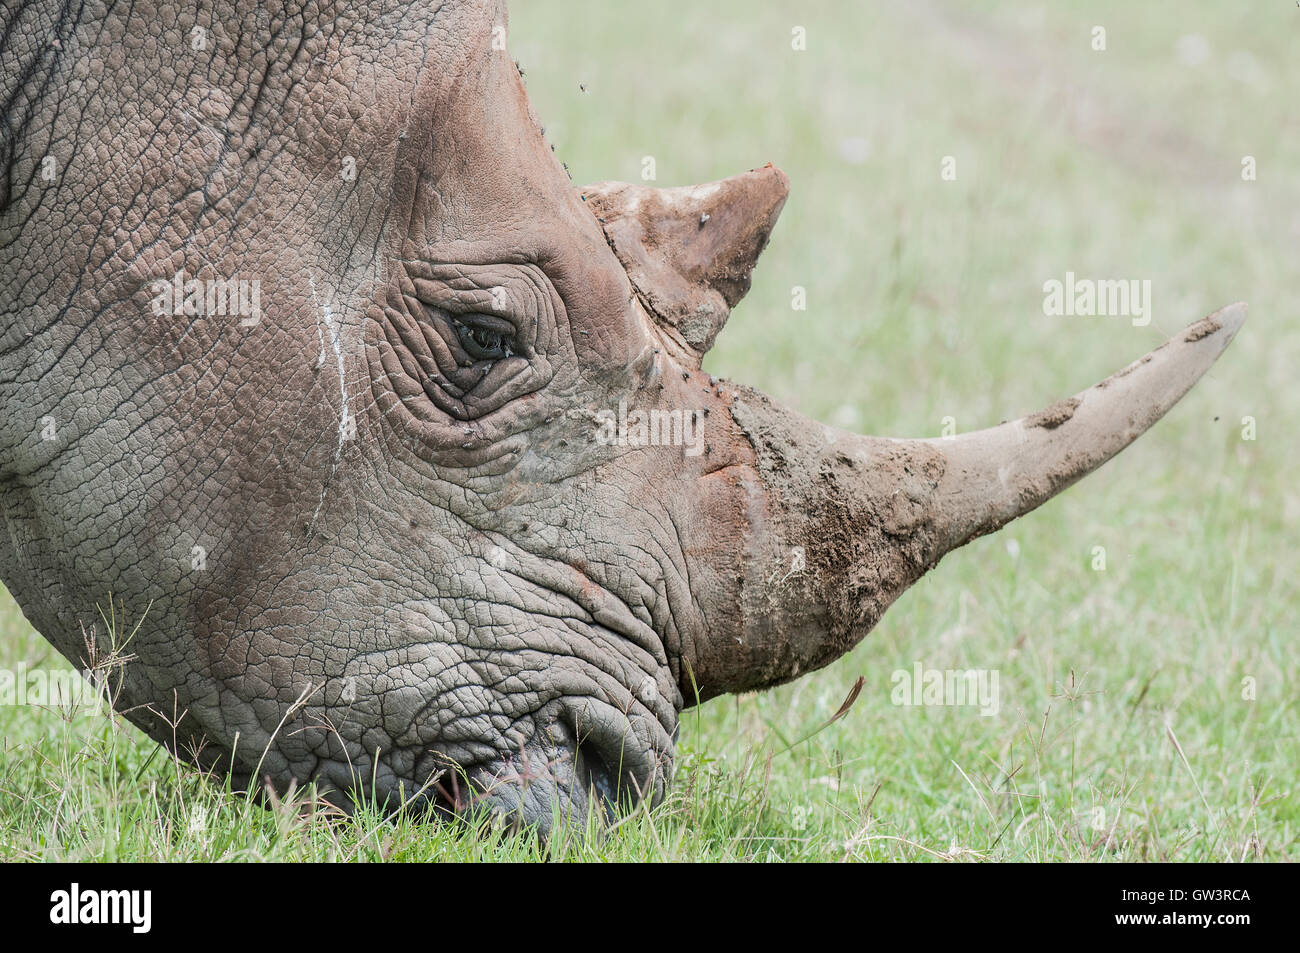 Close up de rhinocéros. Photo Stock